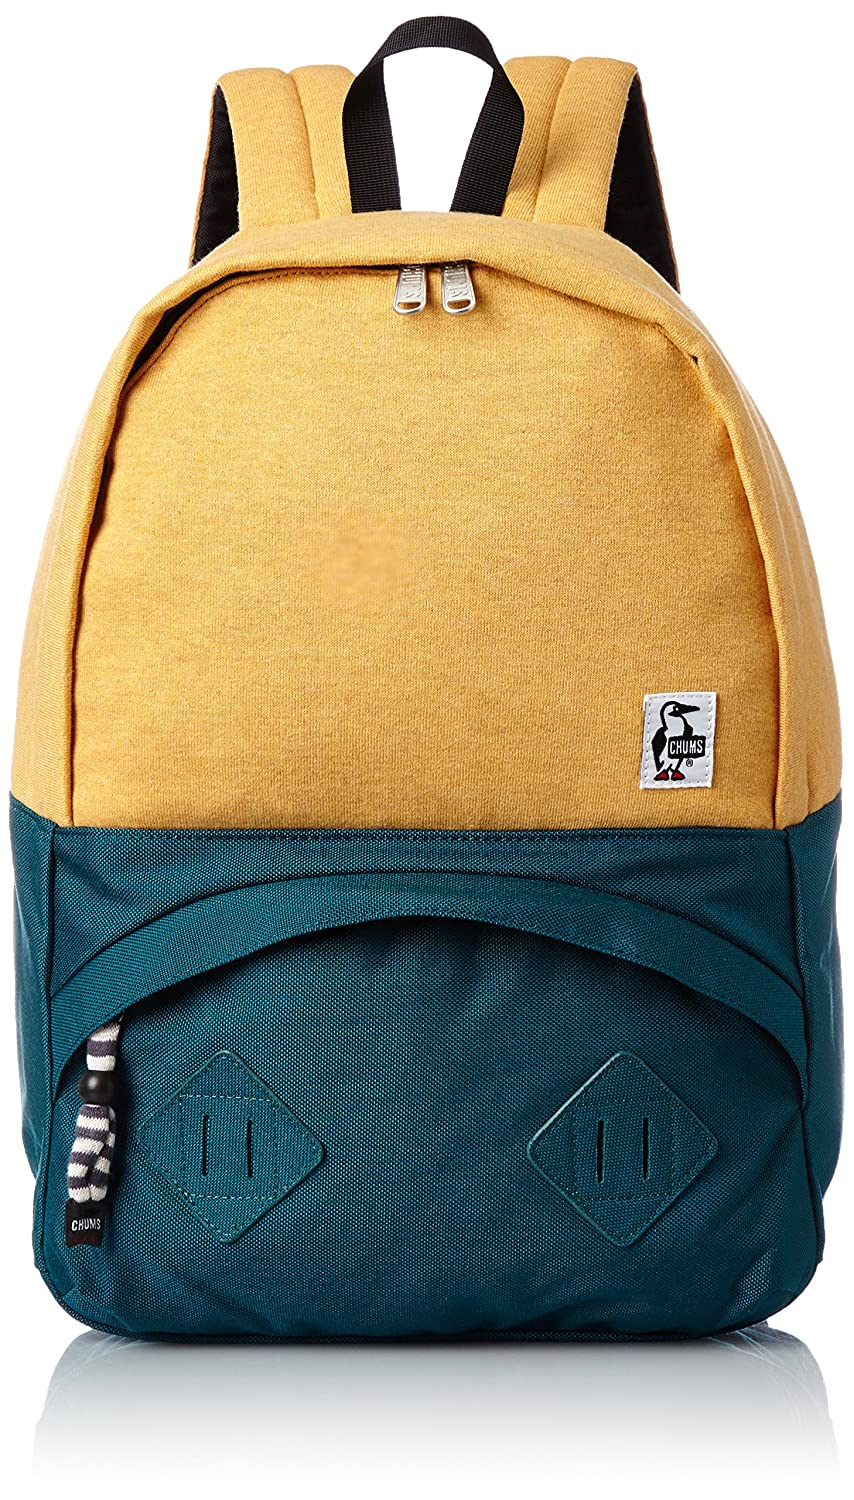 [チャムス] リュック Mariposa Day Pack Sweat Nylon CH60-0912 B0116NIMA4 H-Gold/Lake H-Gold/Lake